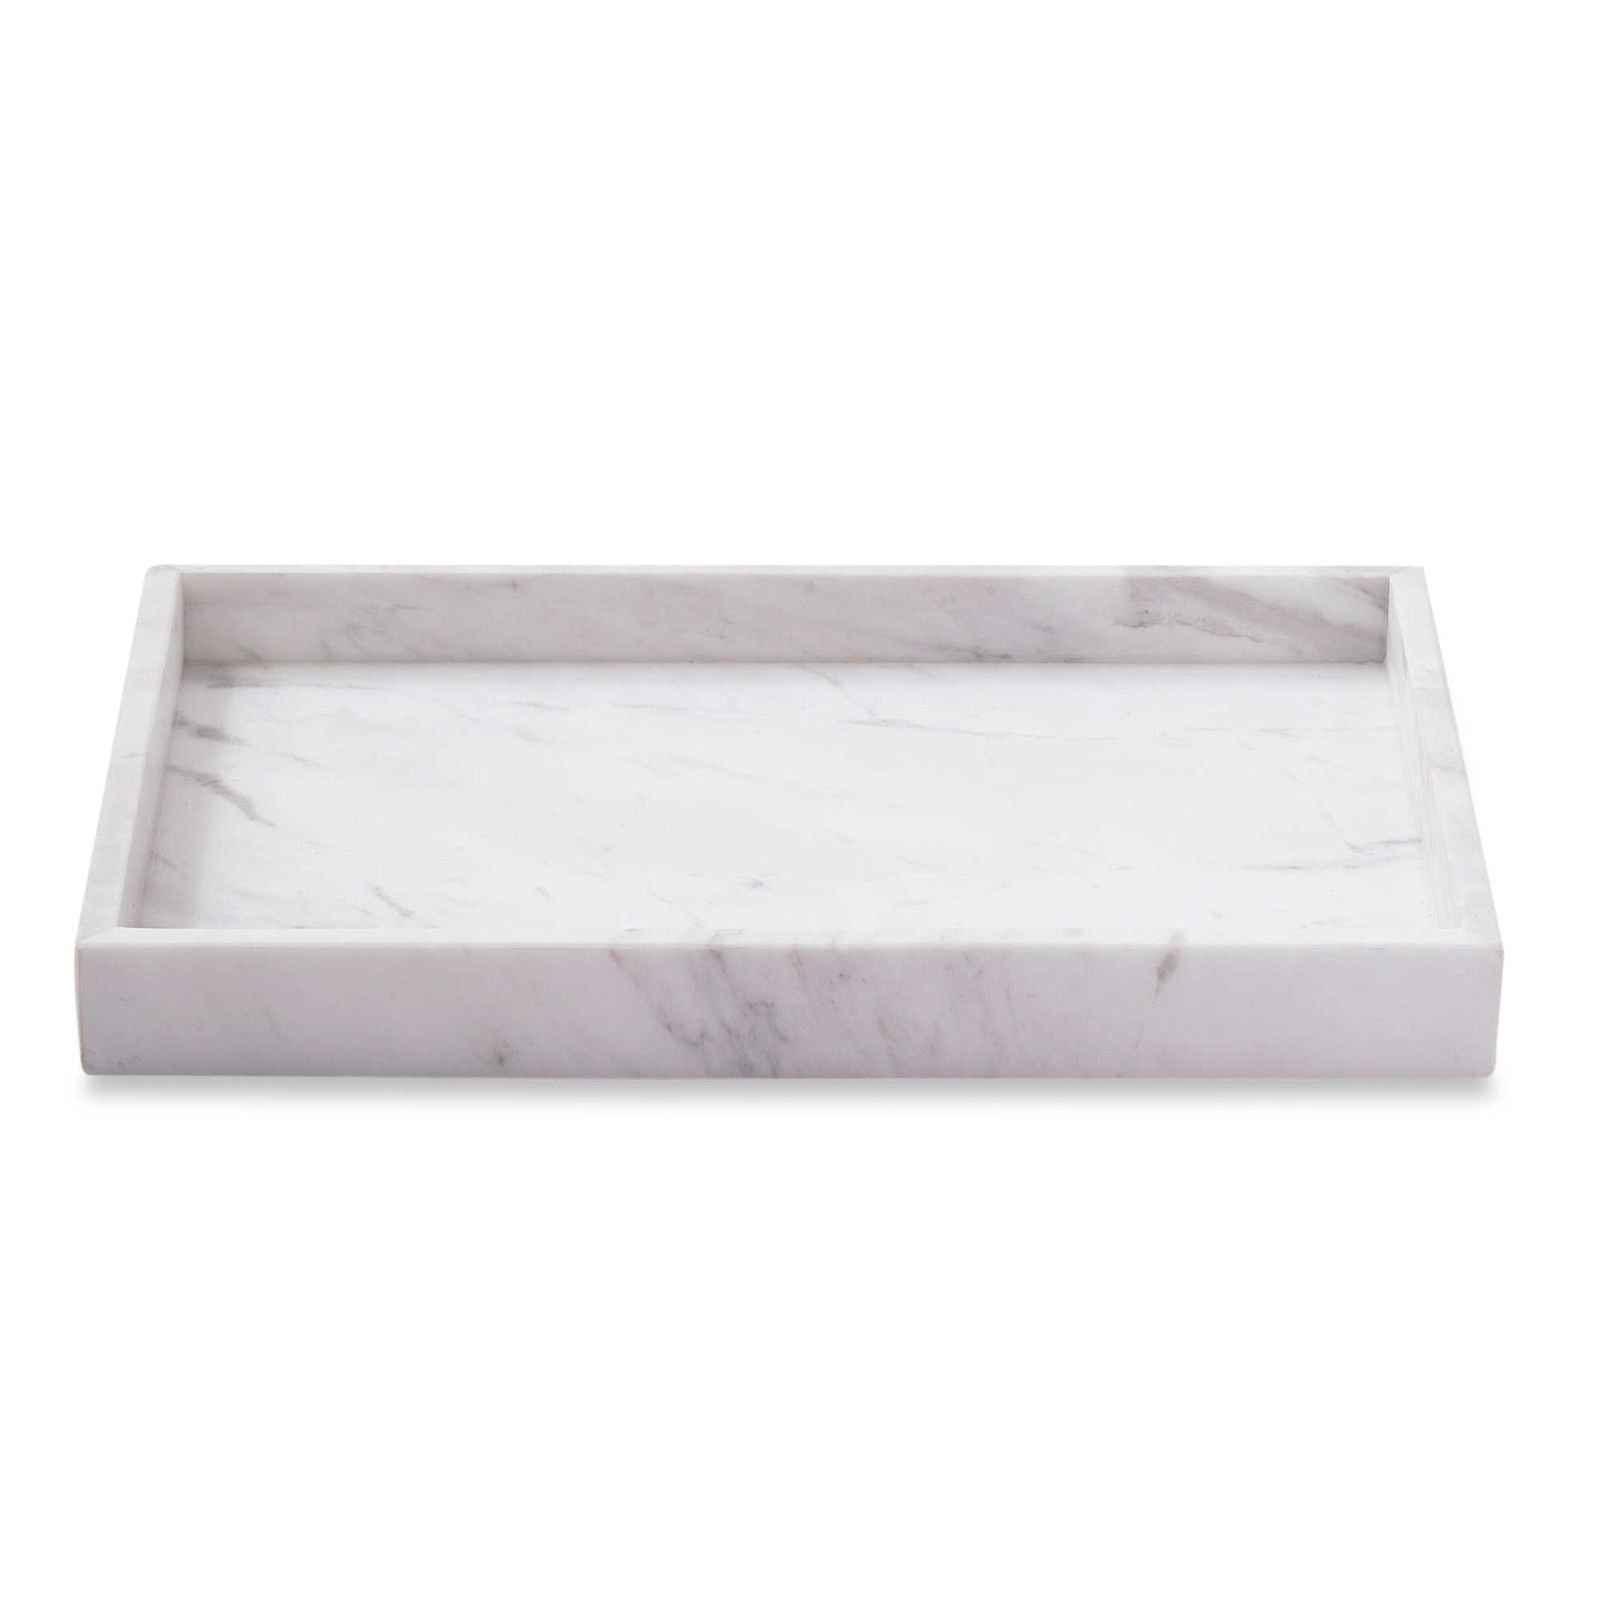 Asher Amada Genuine White Marble Vanity Tray Guest Towels Perfume Bathroom Chic Spa Decor by Asher Amada